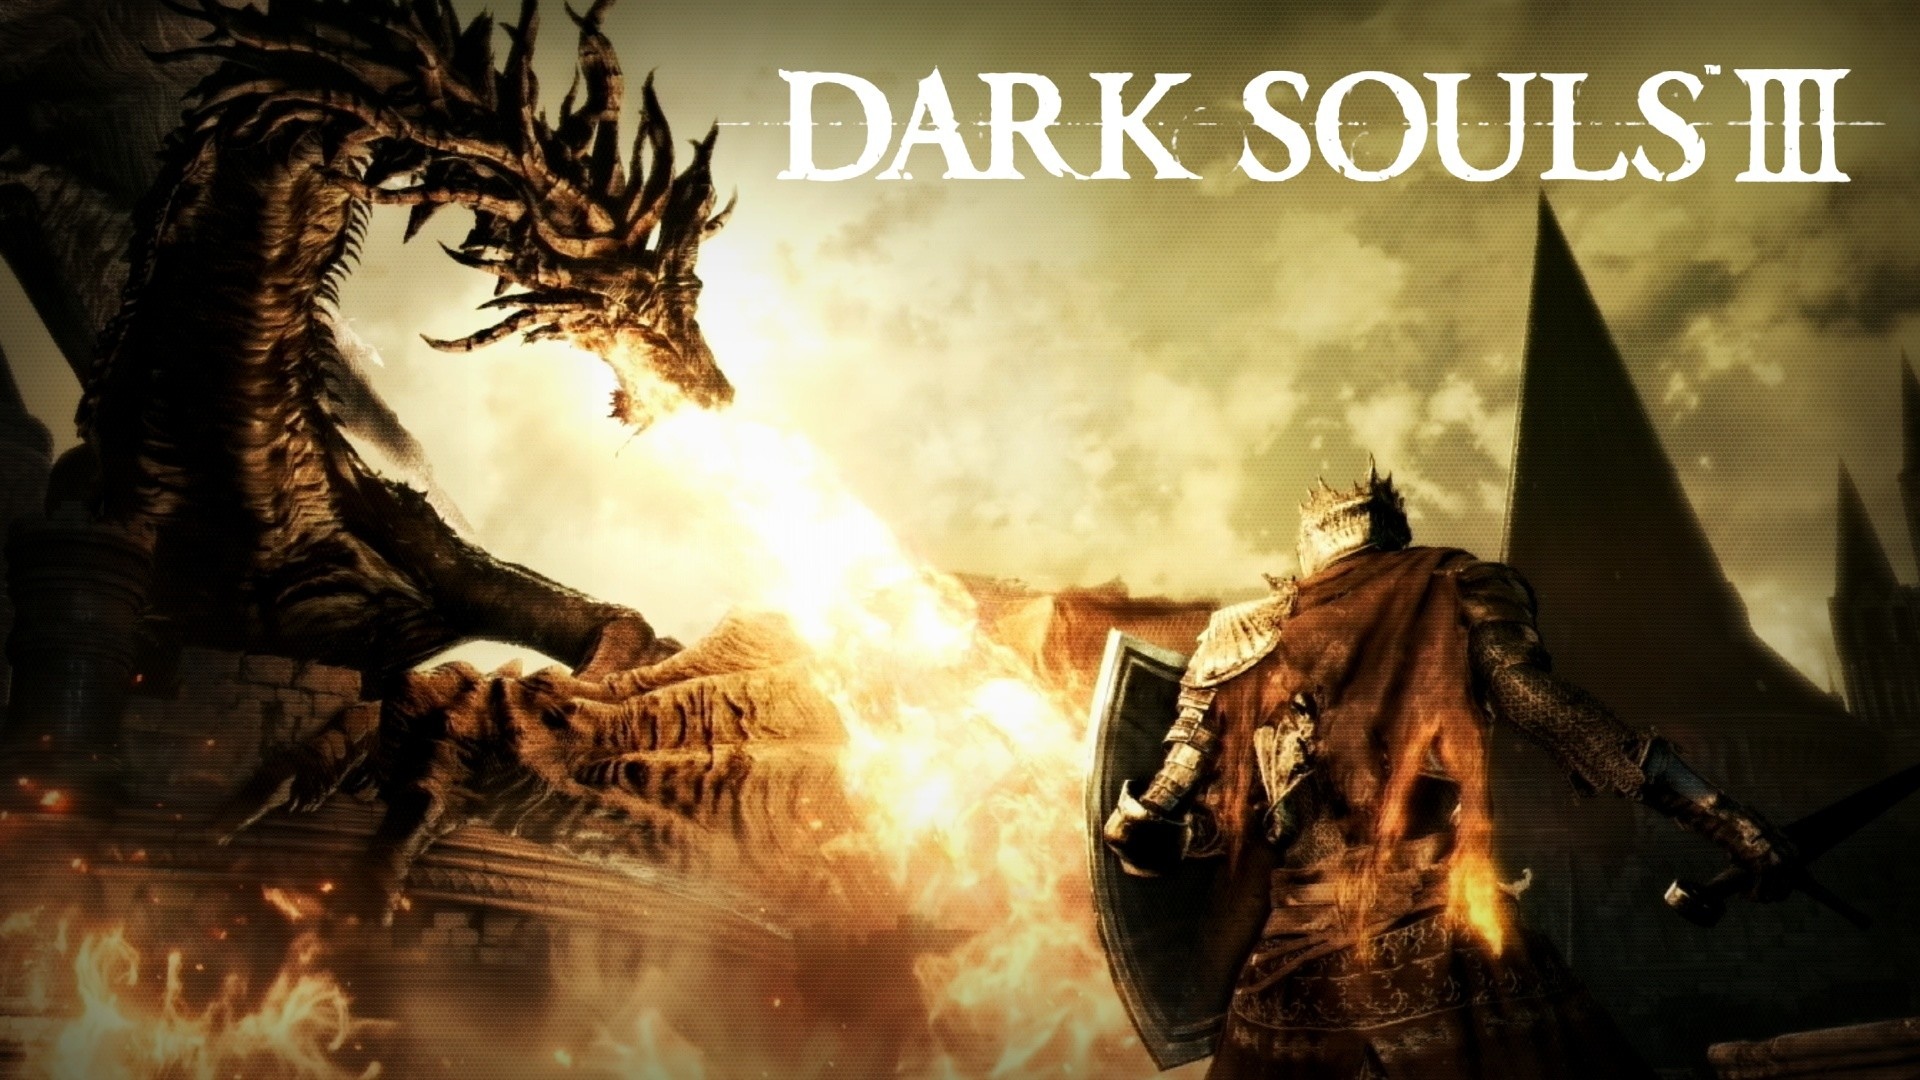 29, 2015 By Stephen Comments Off on Dark Souls 3 HD Wallpaper .